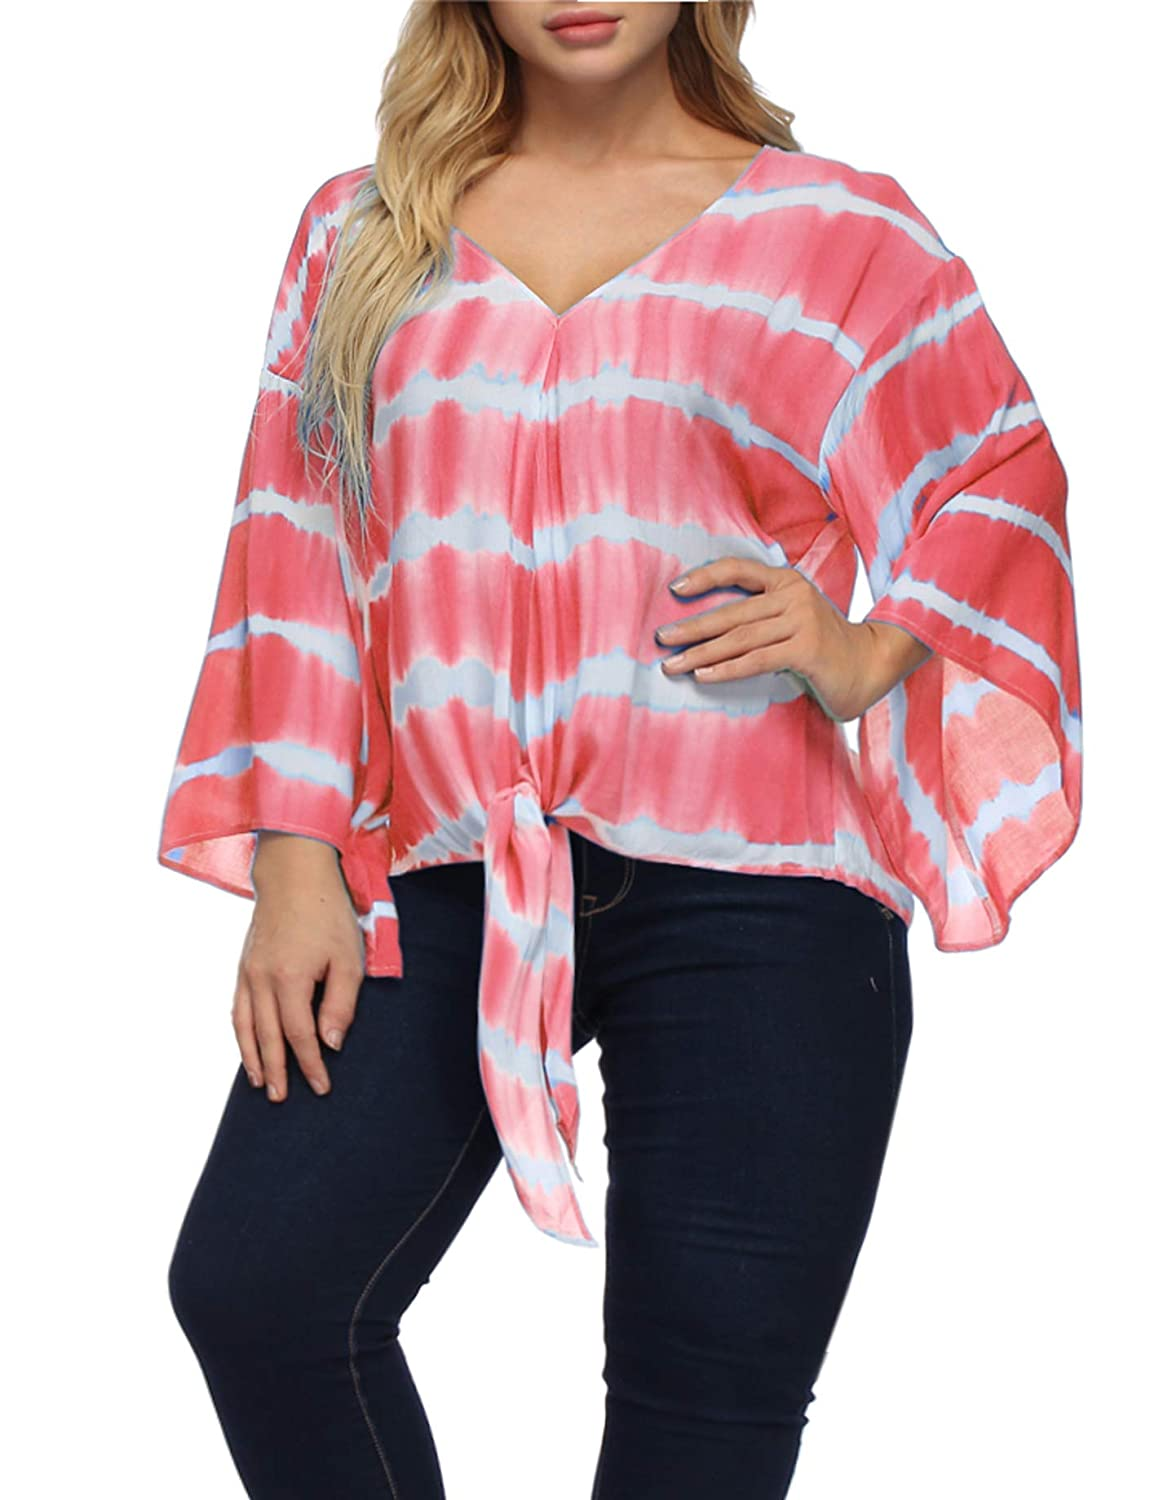 a8c3a4dbcb67bc ... sleeves tie knot design,very Comfortable and Breathable to wear.  Features: Plus Size Chiffon Blouses, Striped Shirts, Tie Knot Front Tops  Off Shoulder ...